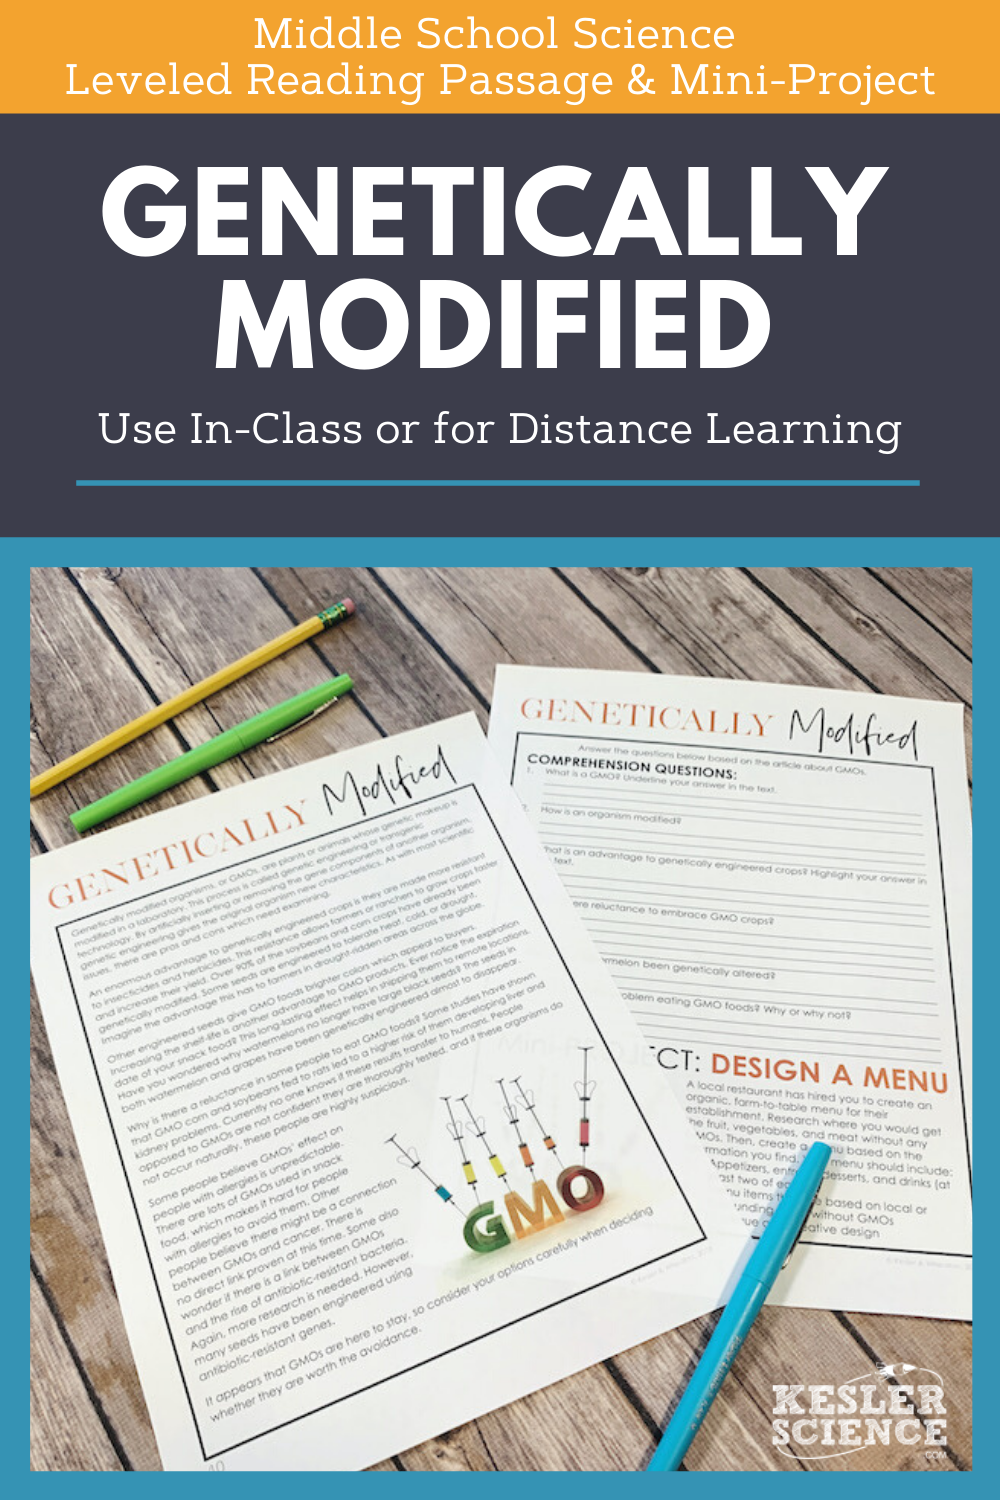 Science Reading Comprehension Genetically Modified Distance Learning Science Reading Comprehension Science Reading Reading Comprehension [ 1500 x 1000 Pixel ]